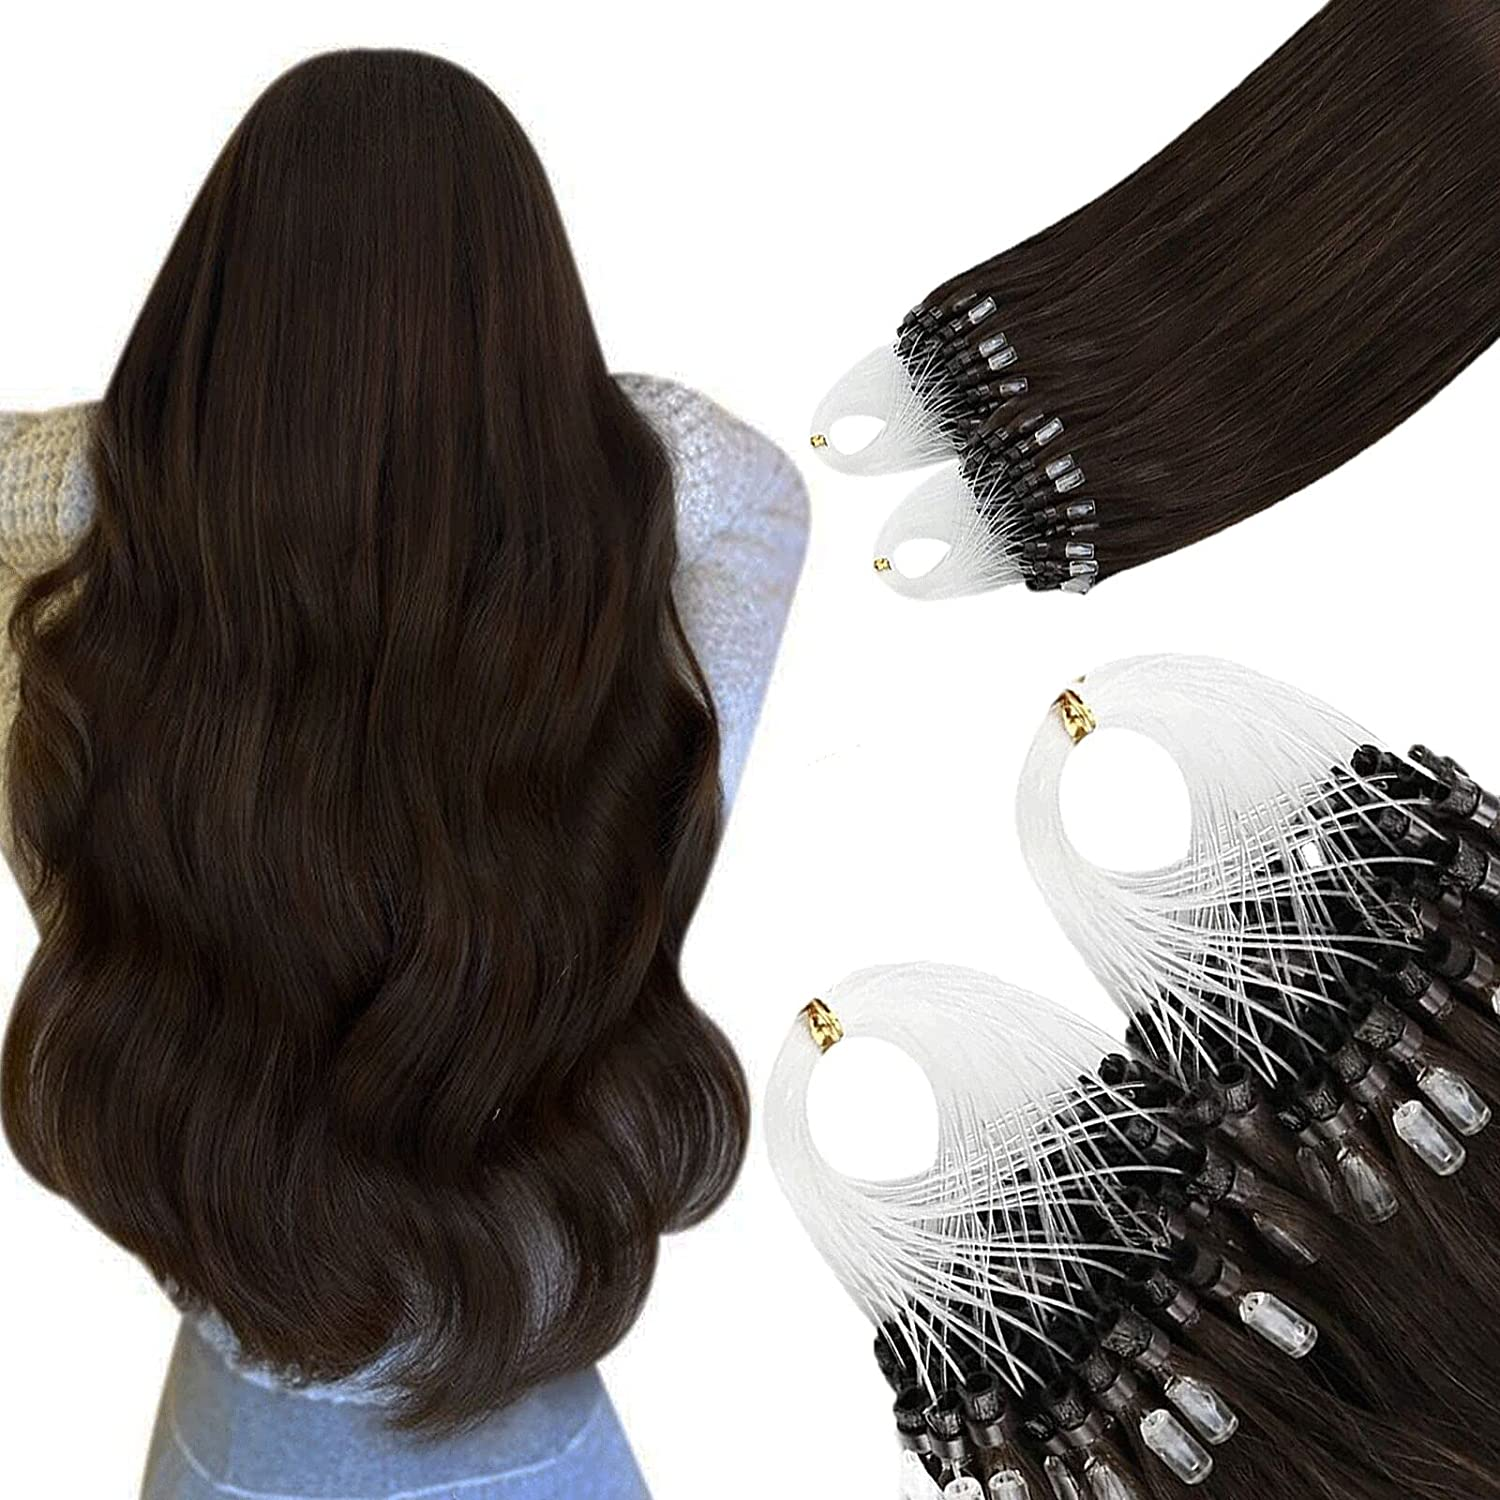 16 Inch Misslala Micro Luxury goods Ring Extensions Super Special SALE held Microbead Hair Real